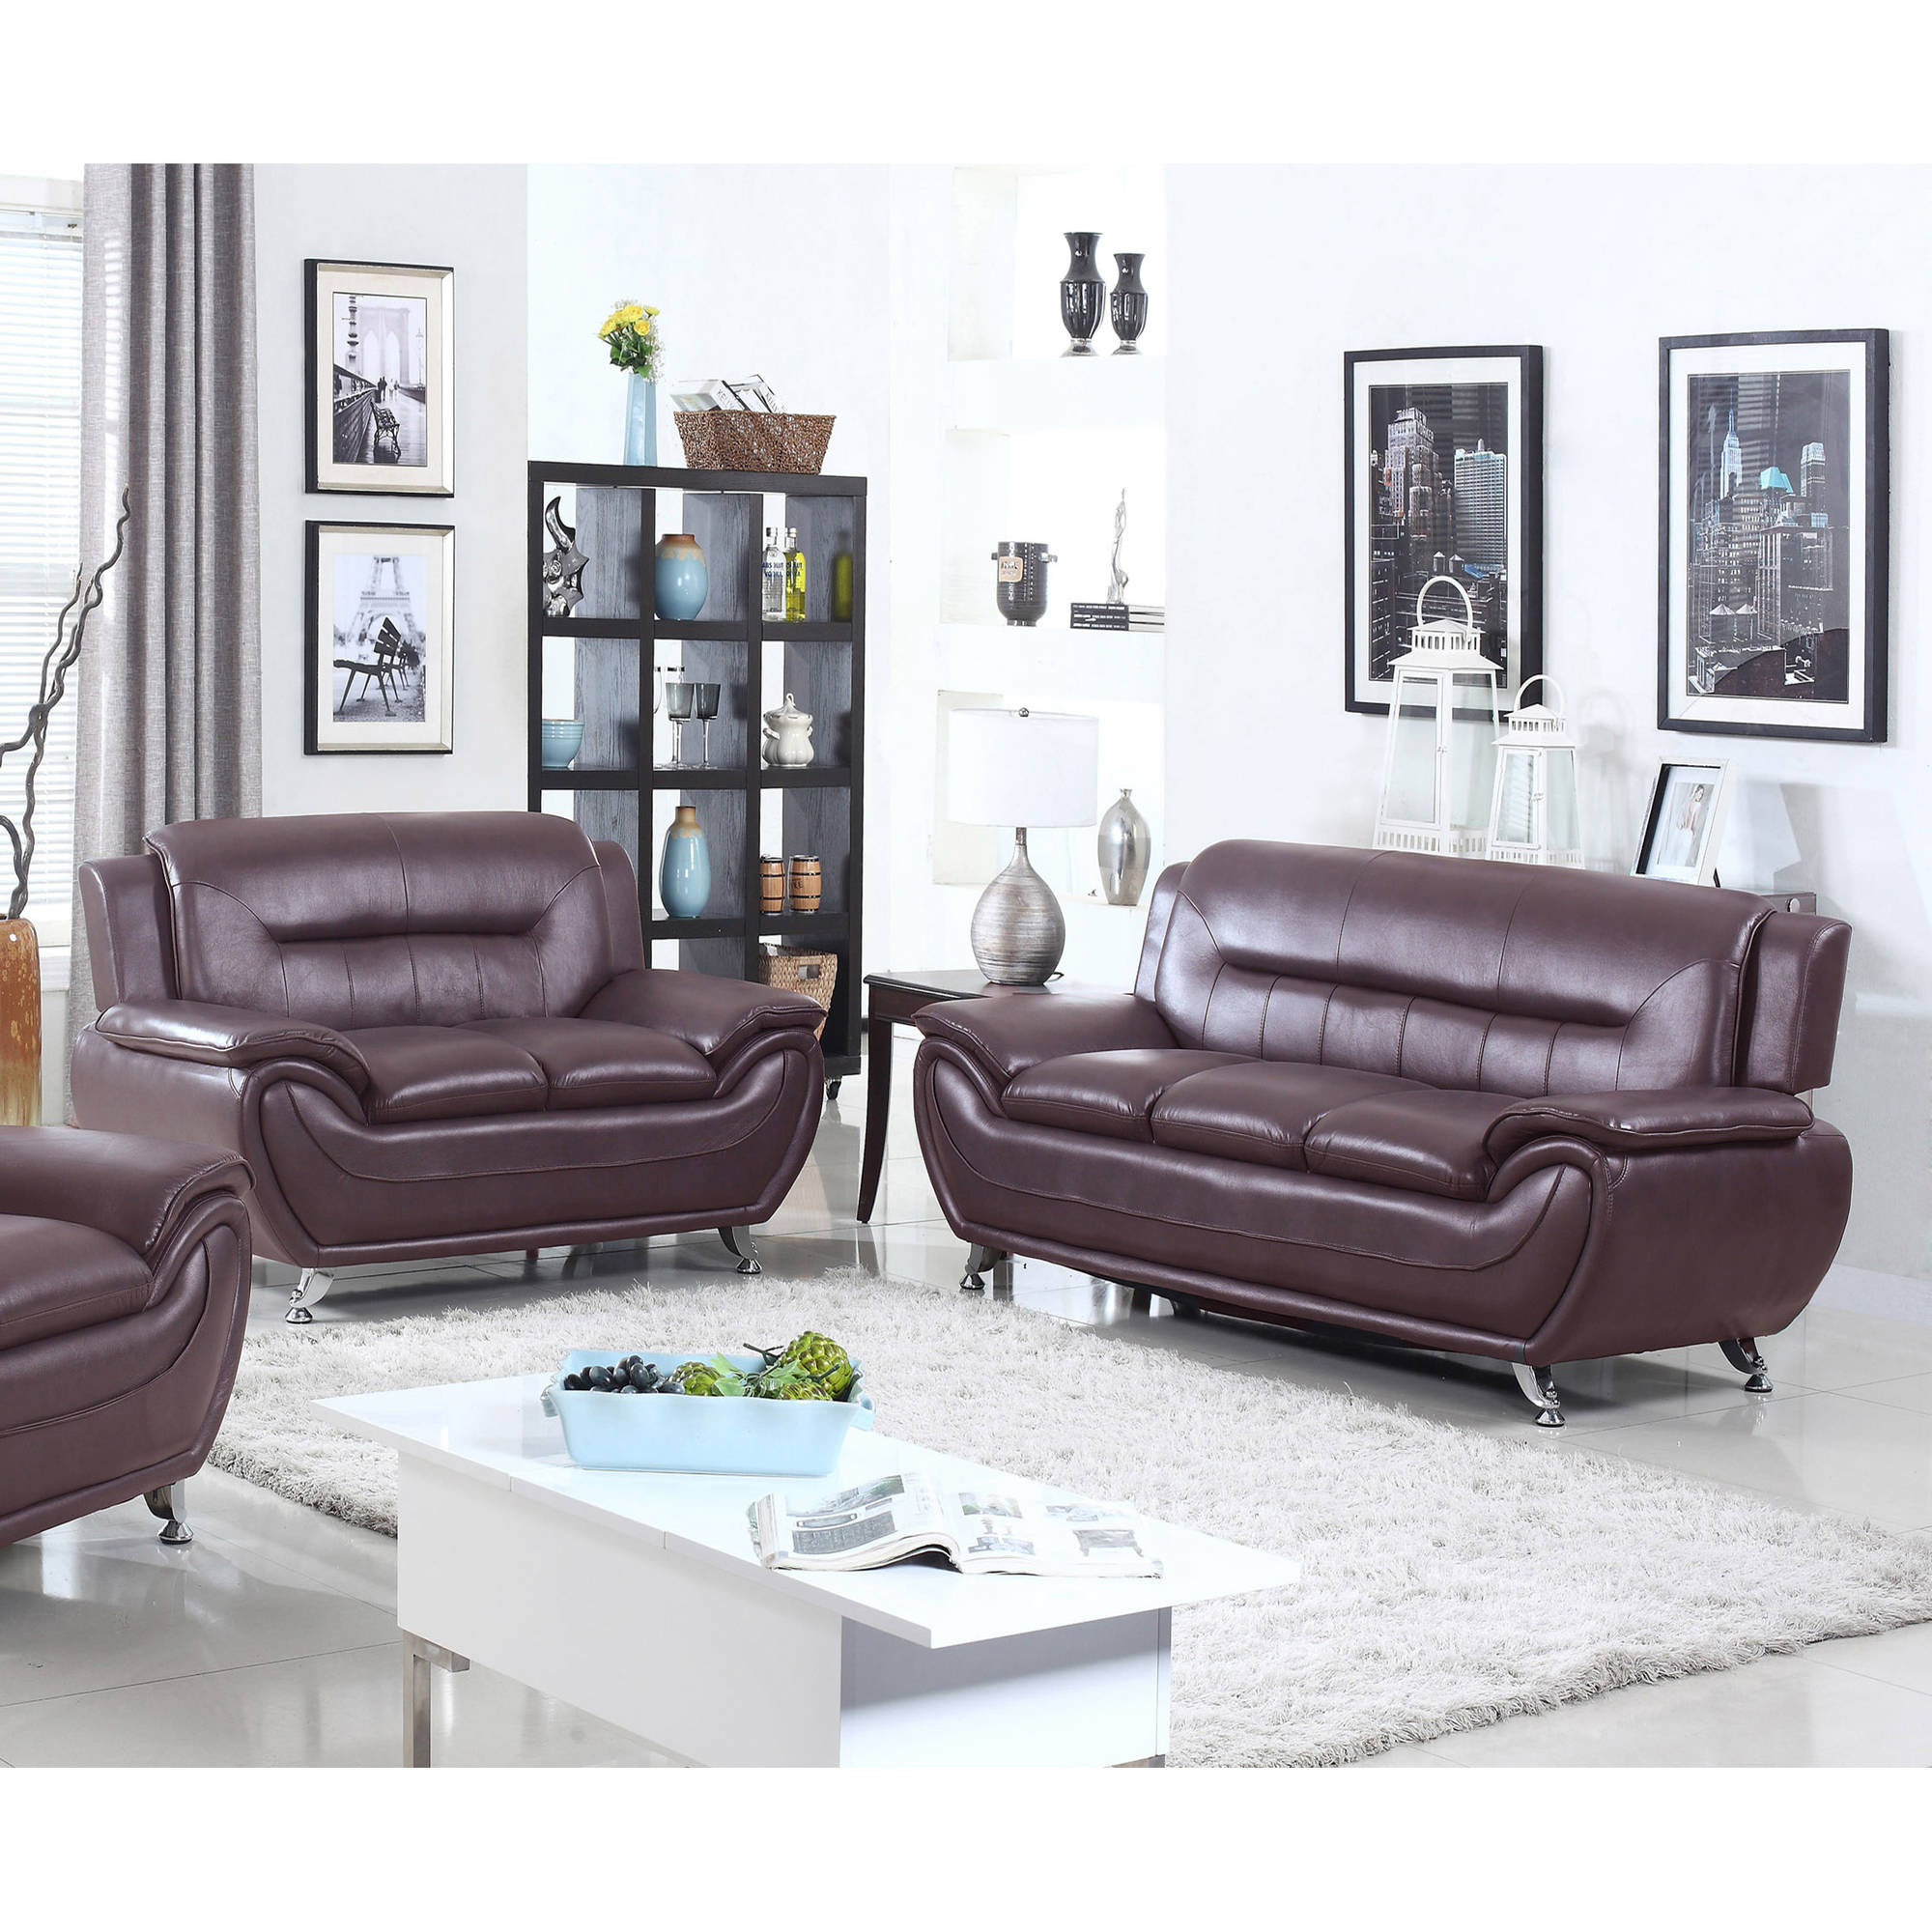 living room sofa and loveseat sets. UFE Norton Dark Brown Faux Leather 2 Piece Modern Living Room Sofa and Loveseat  Set Walmart com